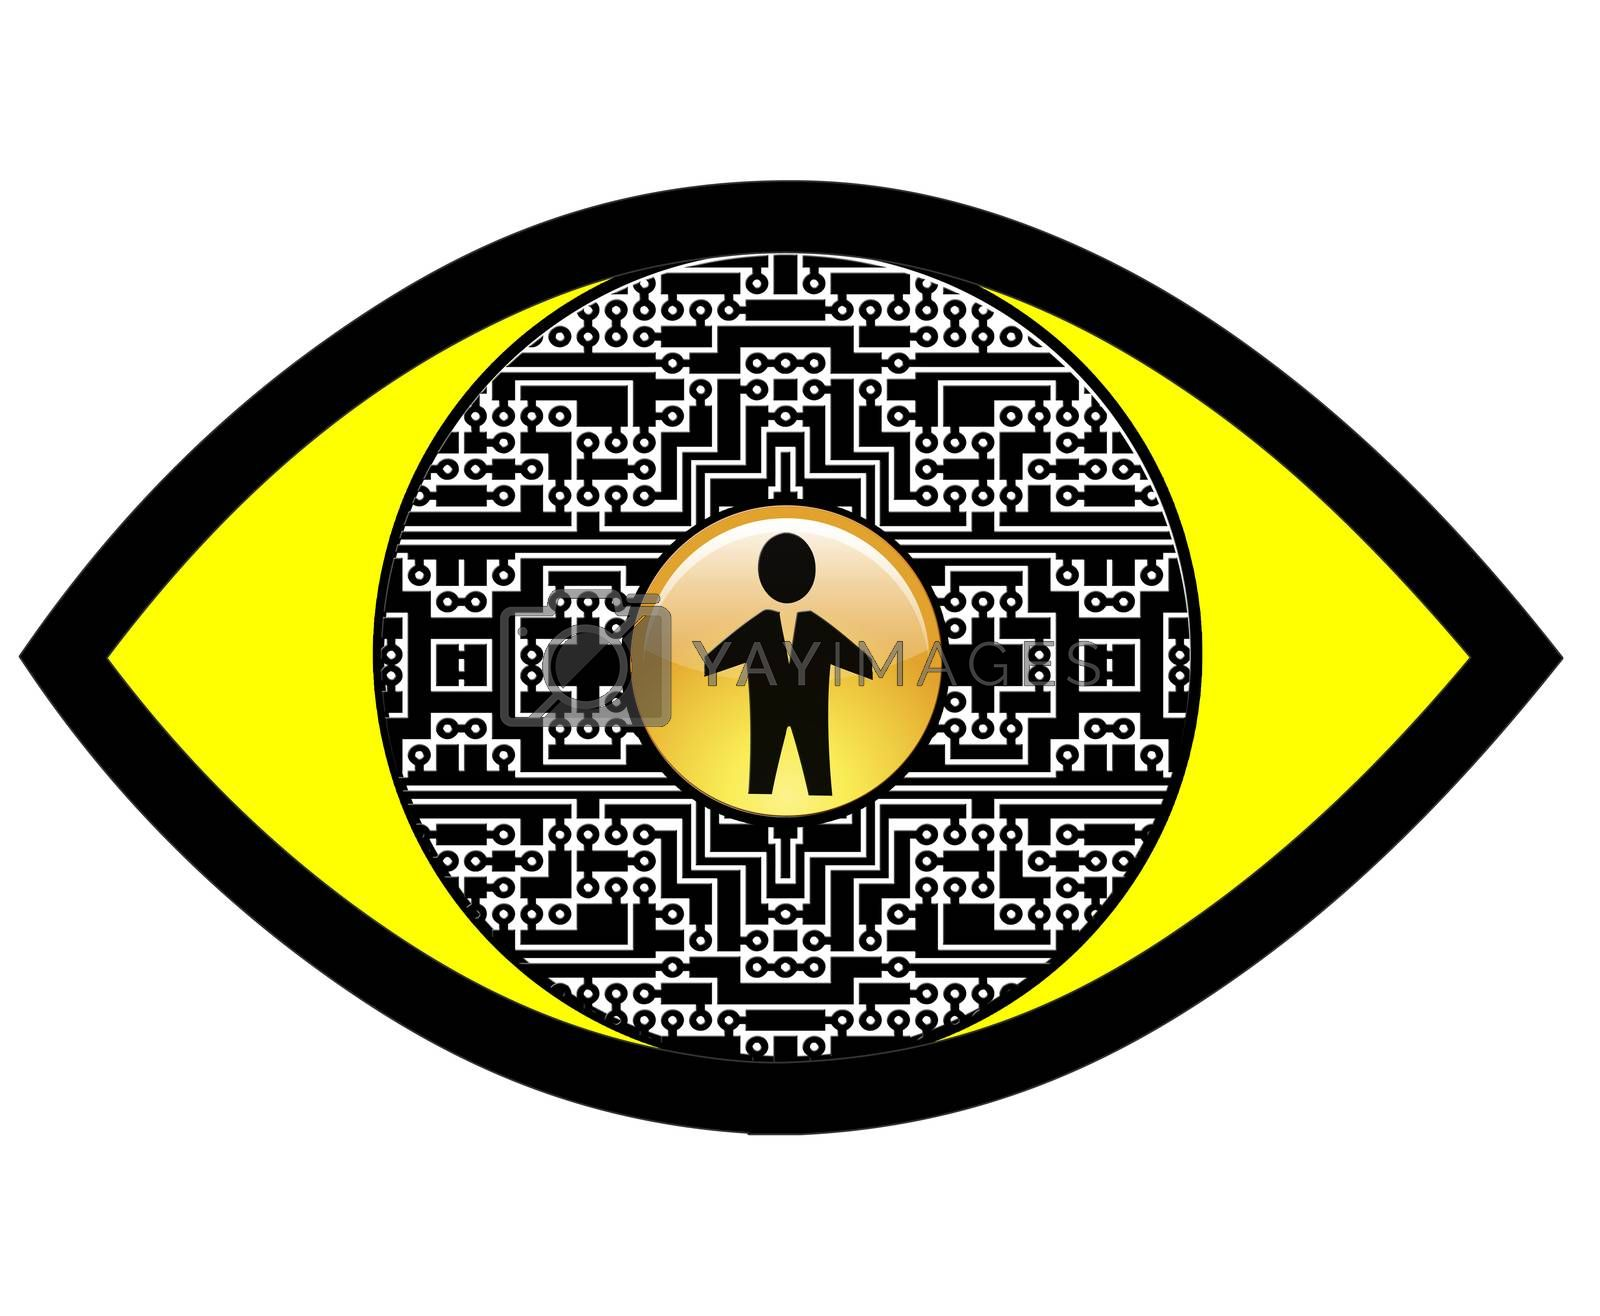 Sign and symbol for Full Body Scanner or overall security concept